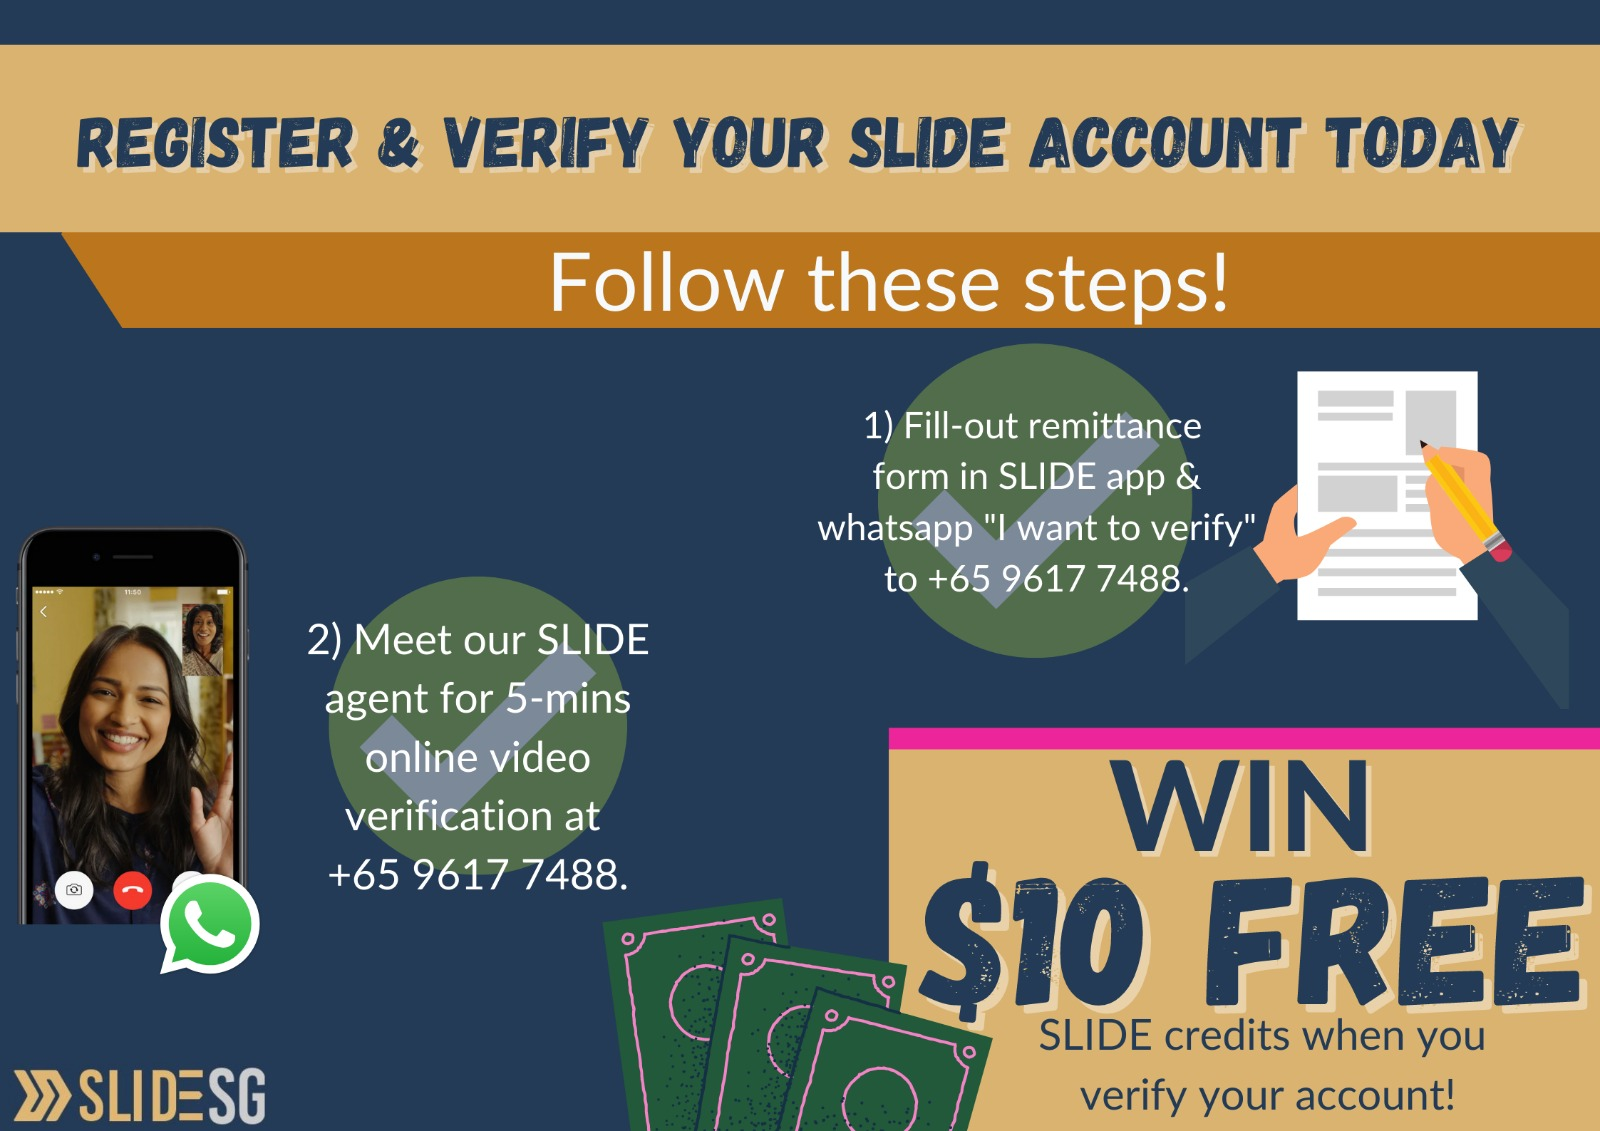 poster of SLIDE verification promo to get $10